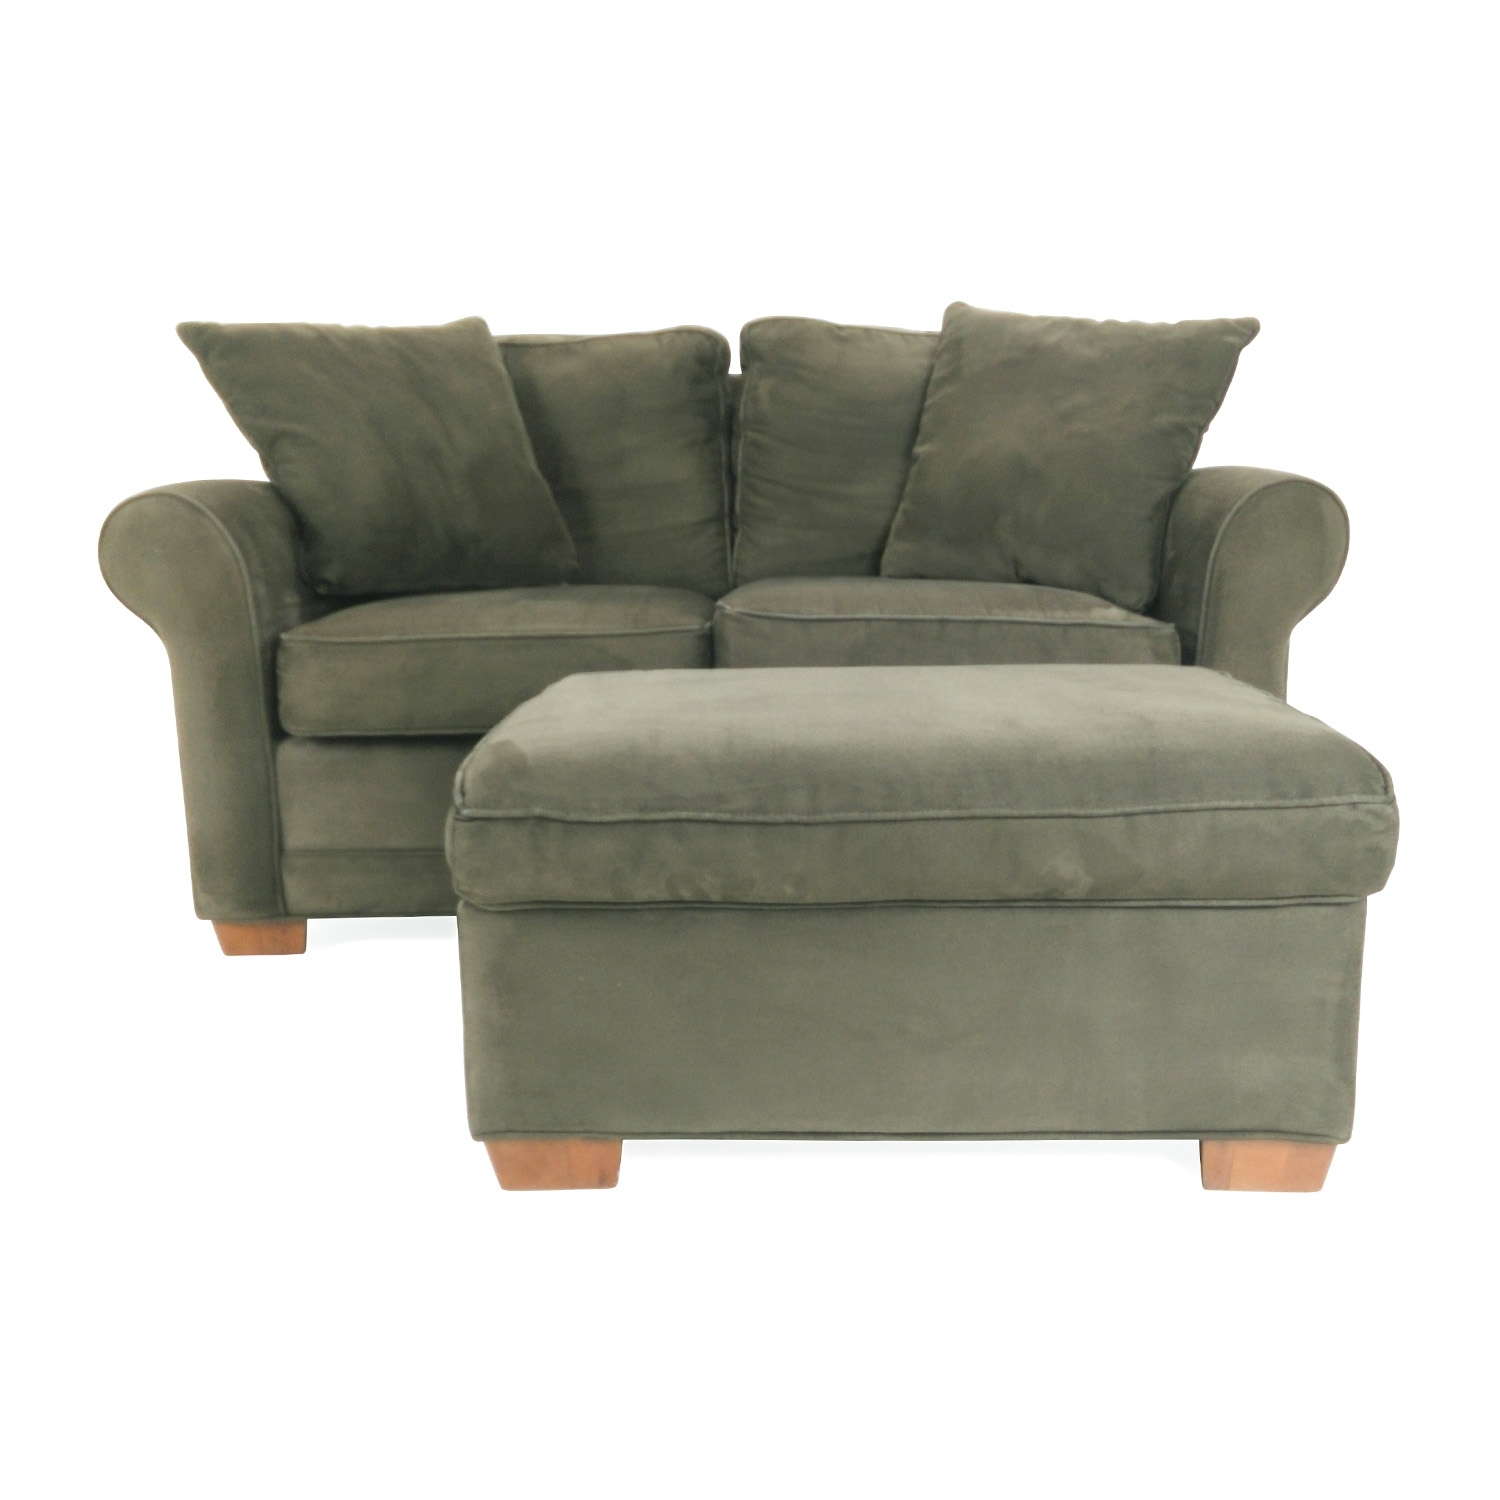 78% Off - Raymour And Flanigan Raymour And Flanigan Love Seat And intended for Loveseats With Ottoman